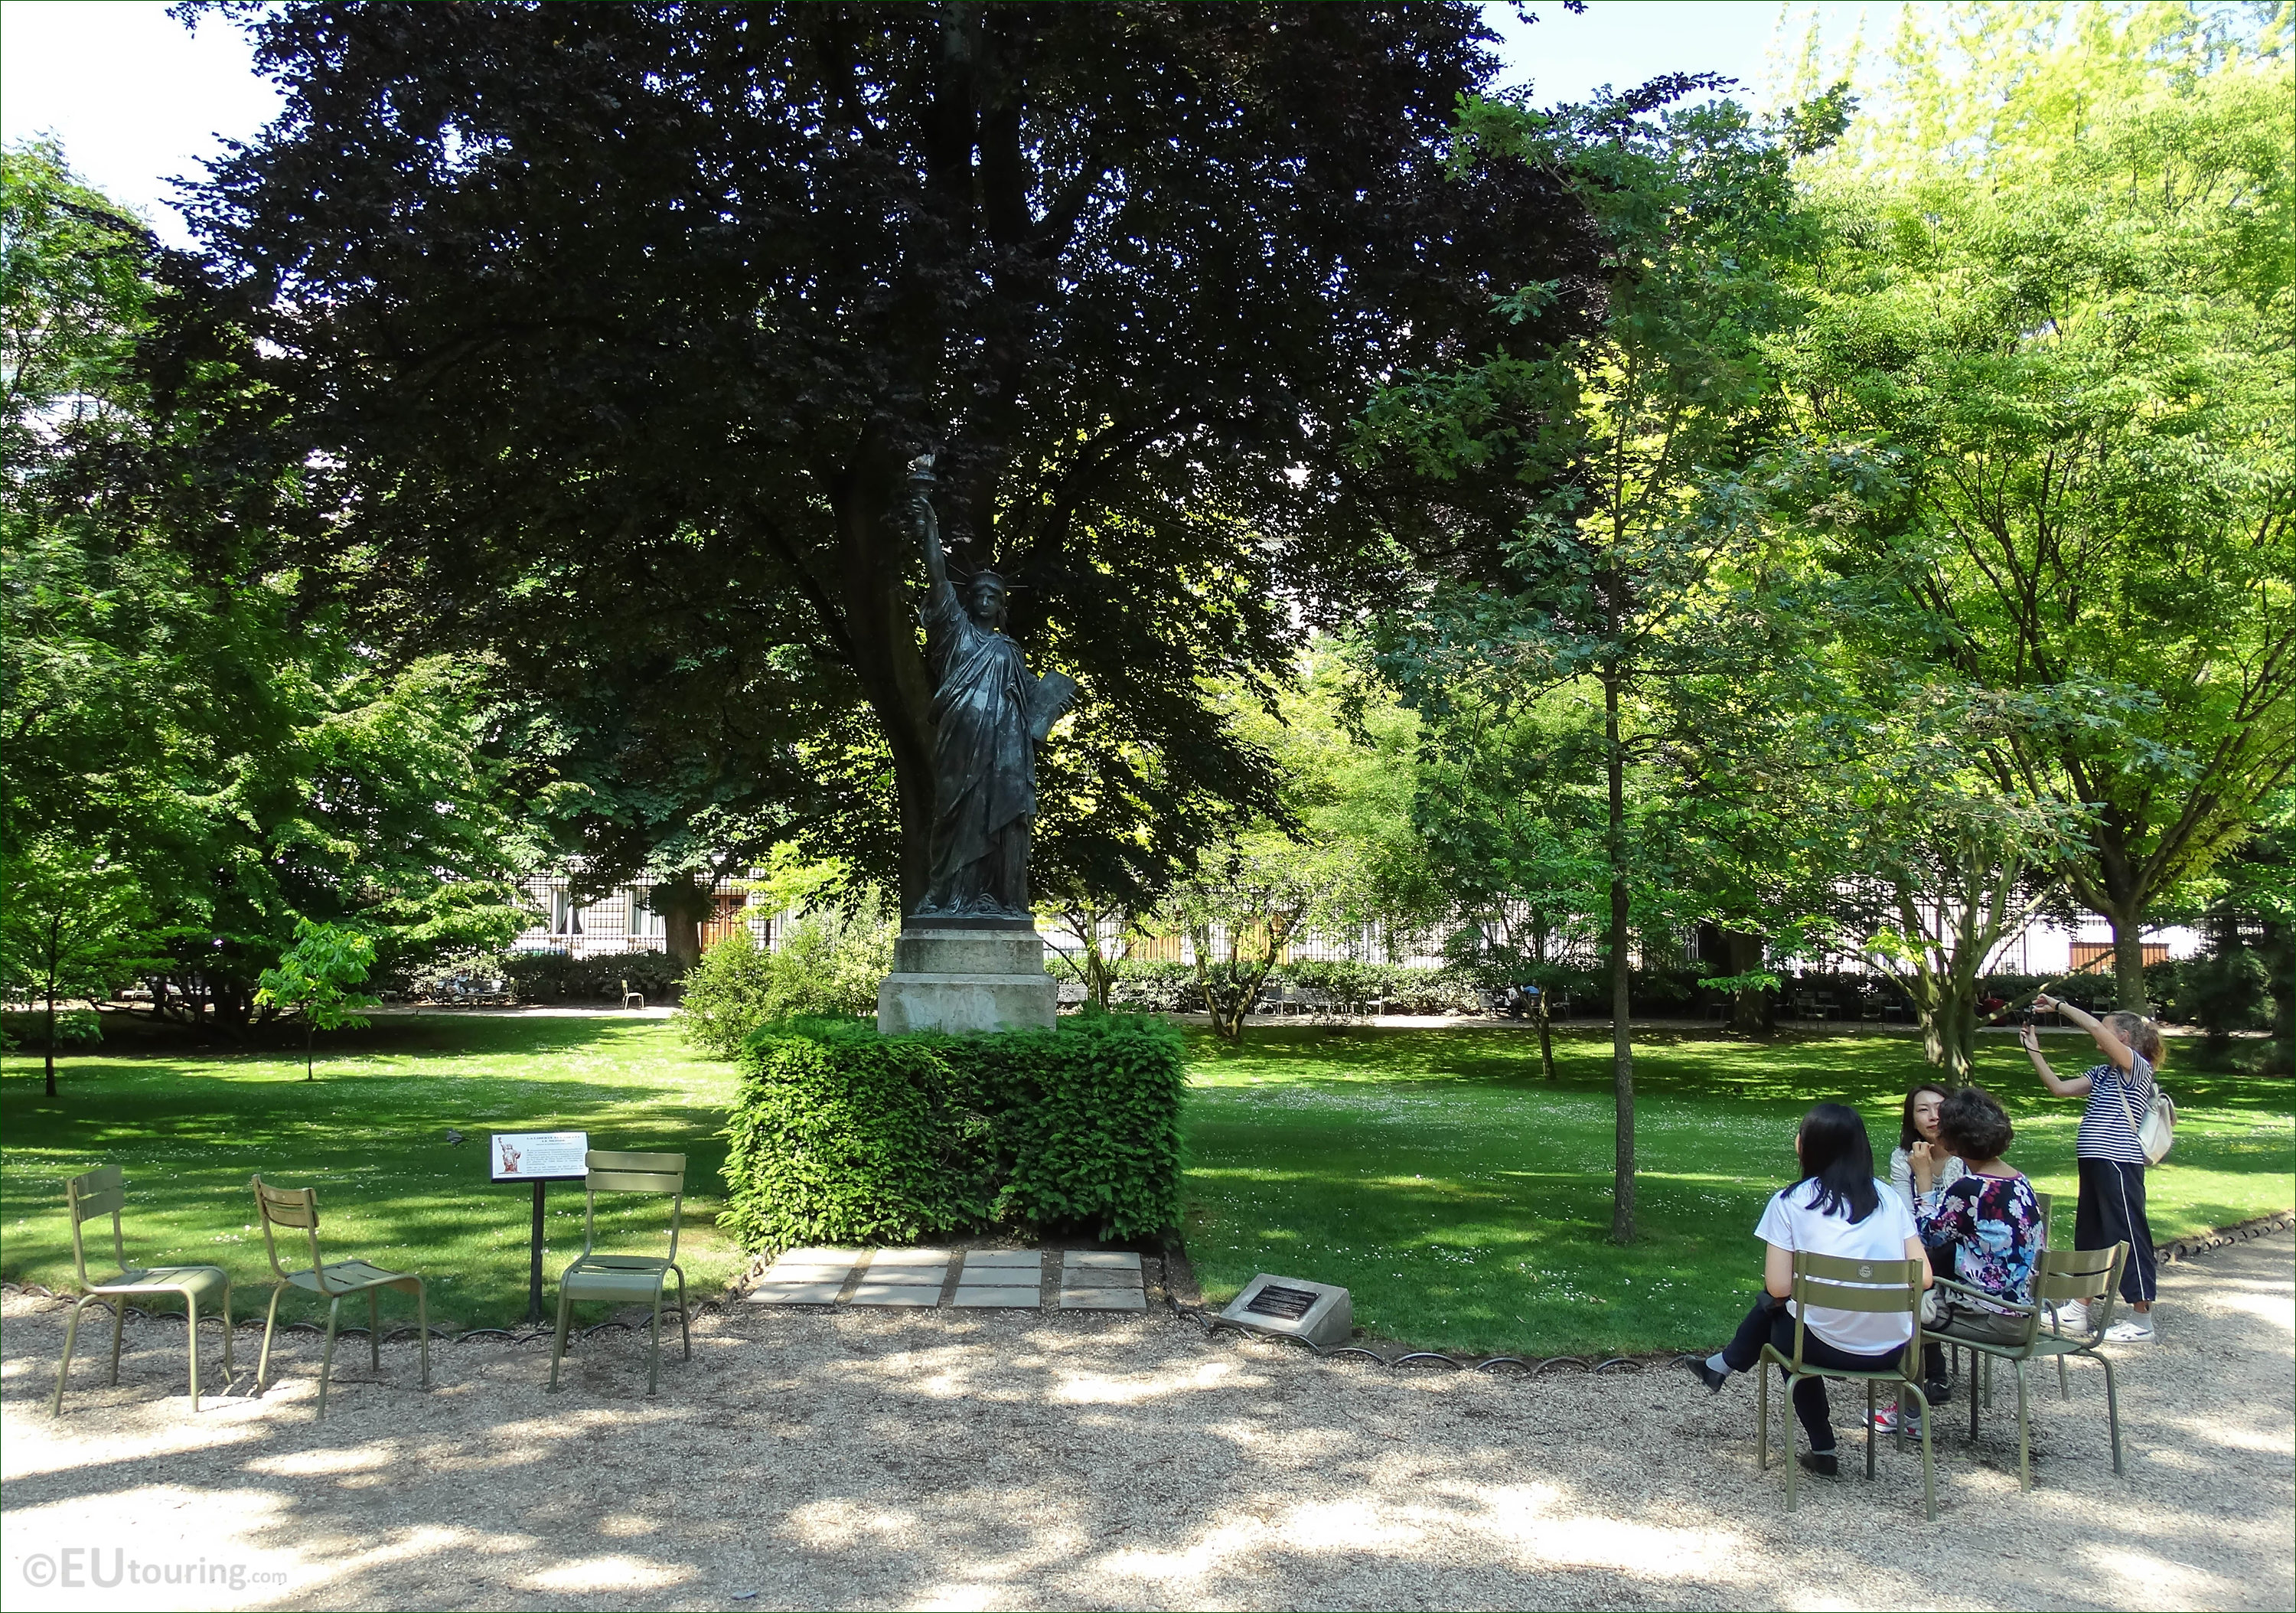 Photo Of Statue Of Liberty Within Luxembourg Gardens Paris Page 200